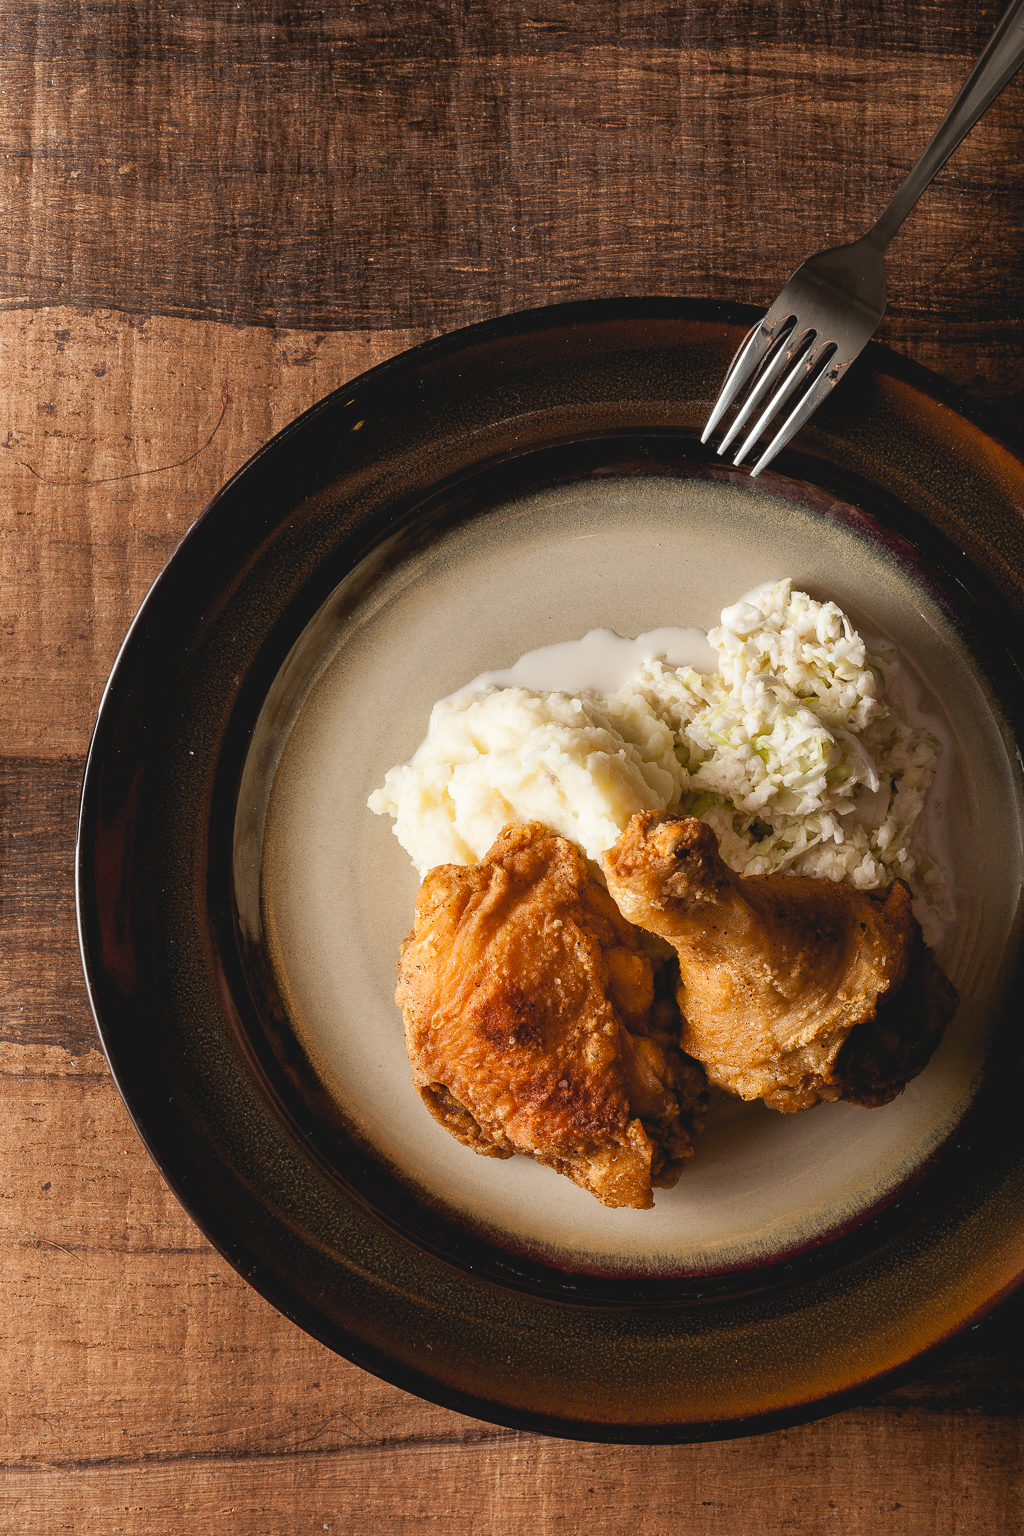 simple fried chicken, cole slaw, mashed potatoes.